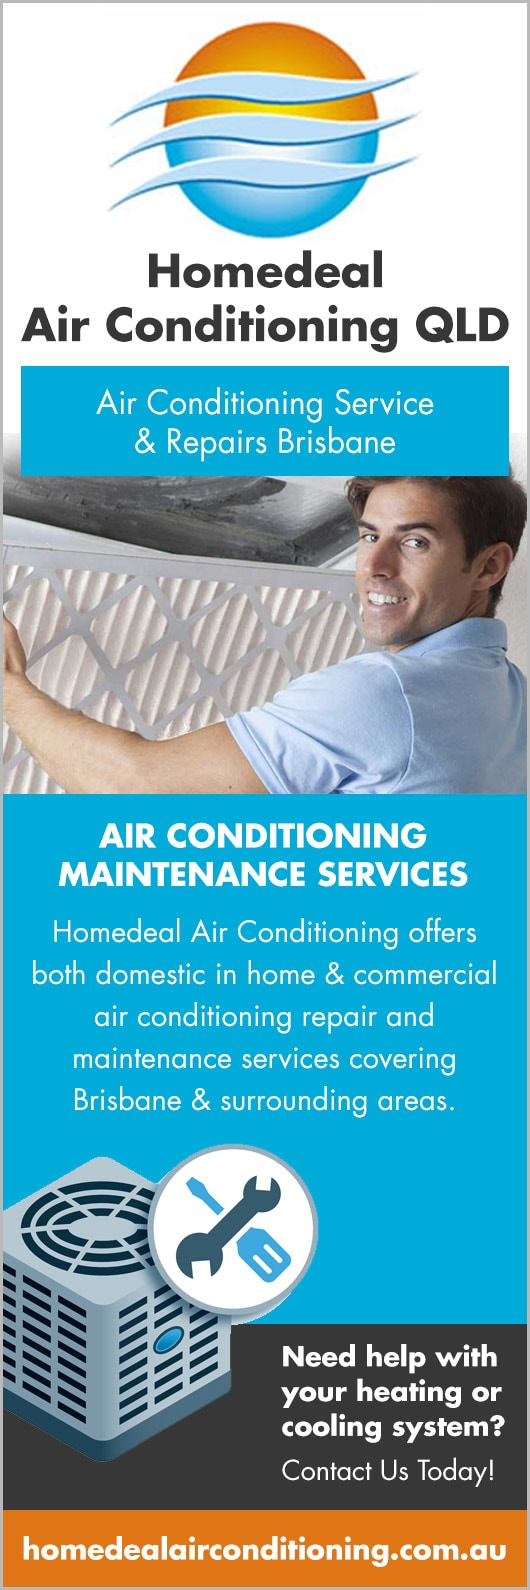 Homedeal Air Conditioning Qld